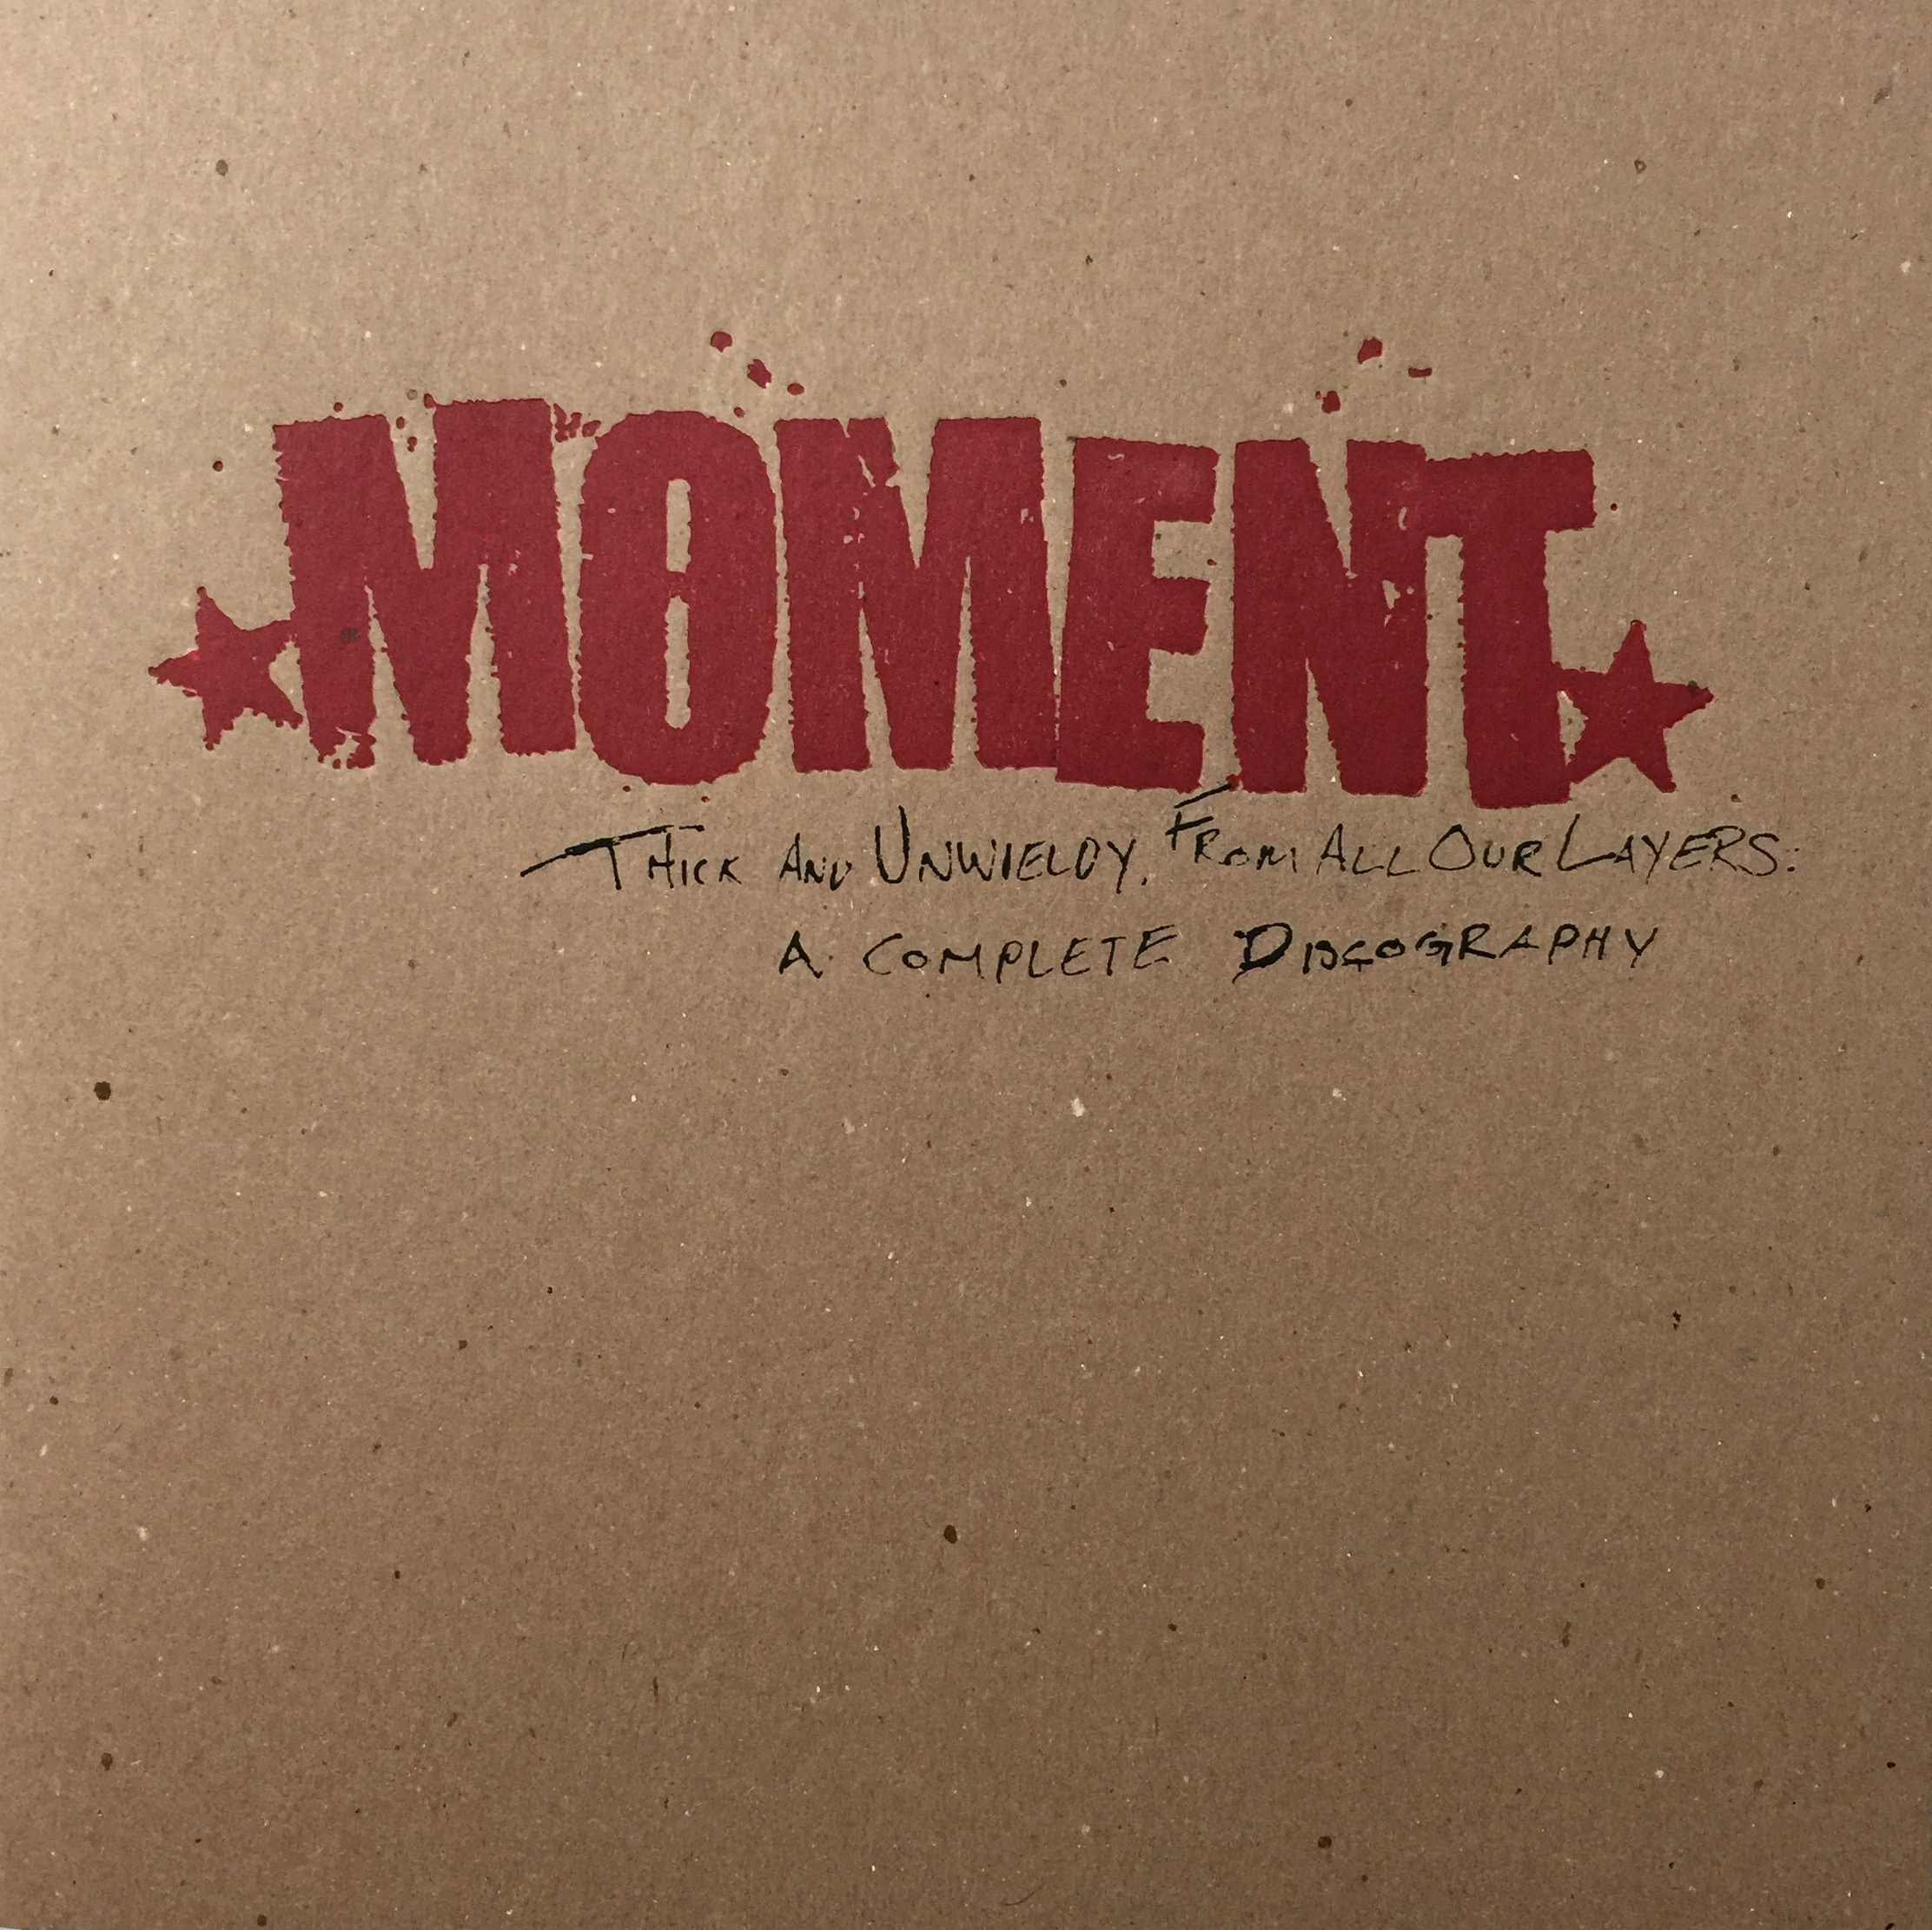 The Final LP Cover